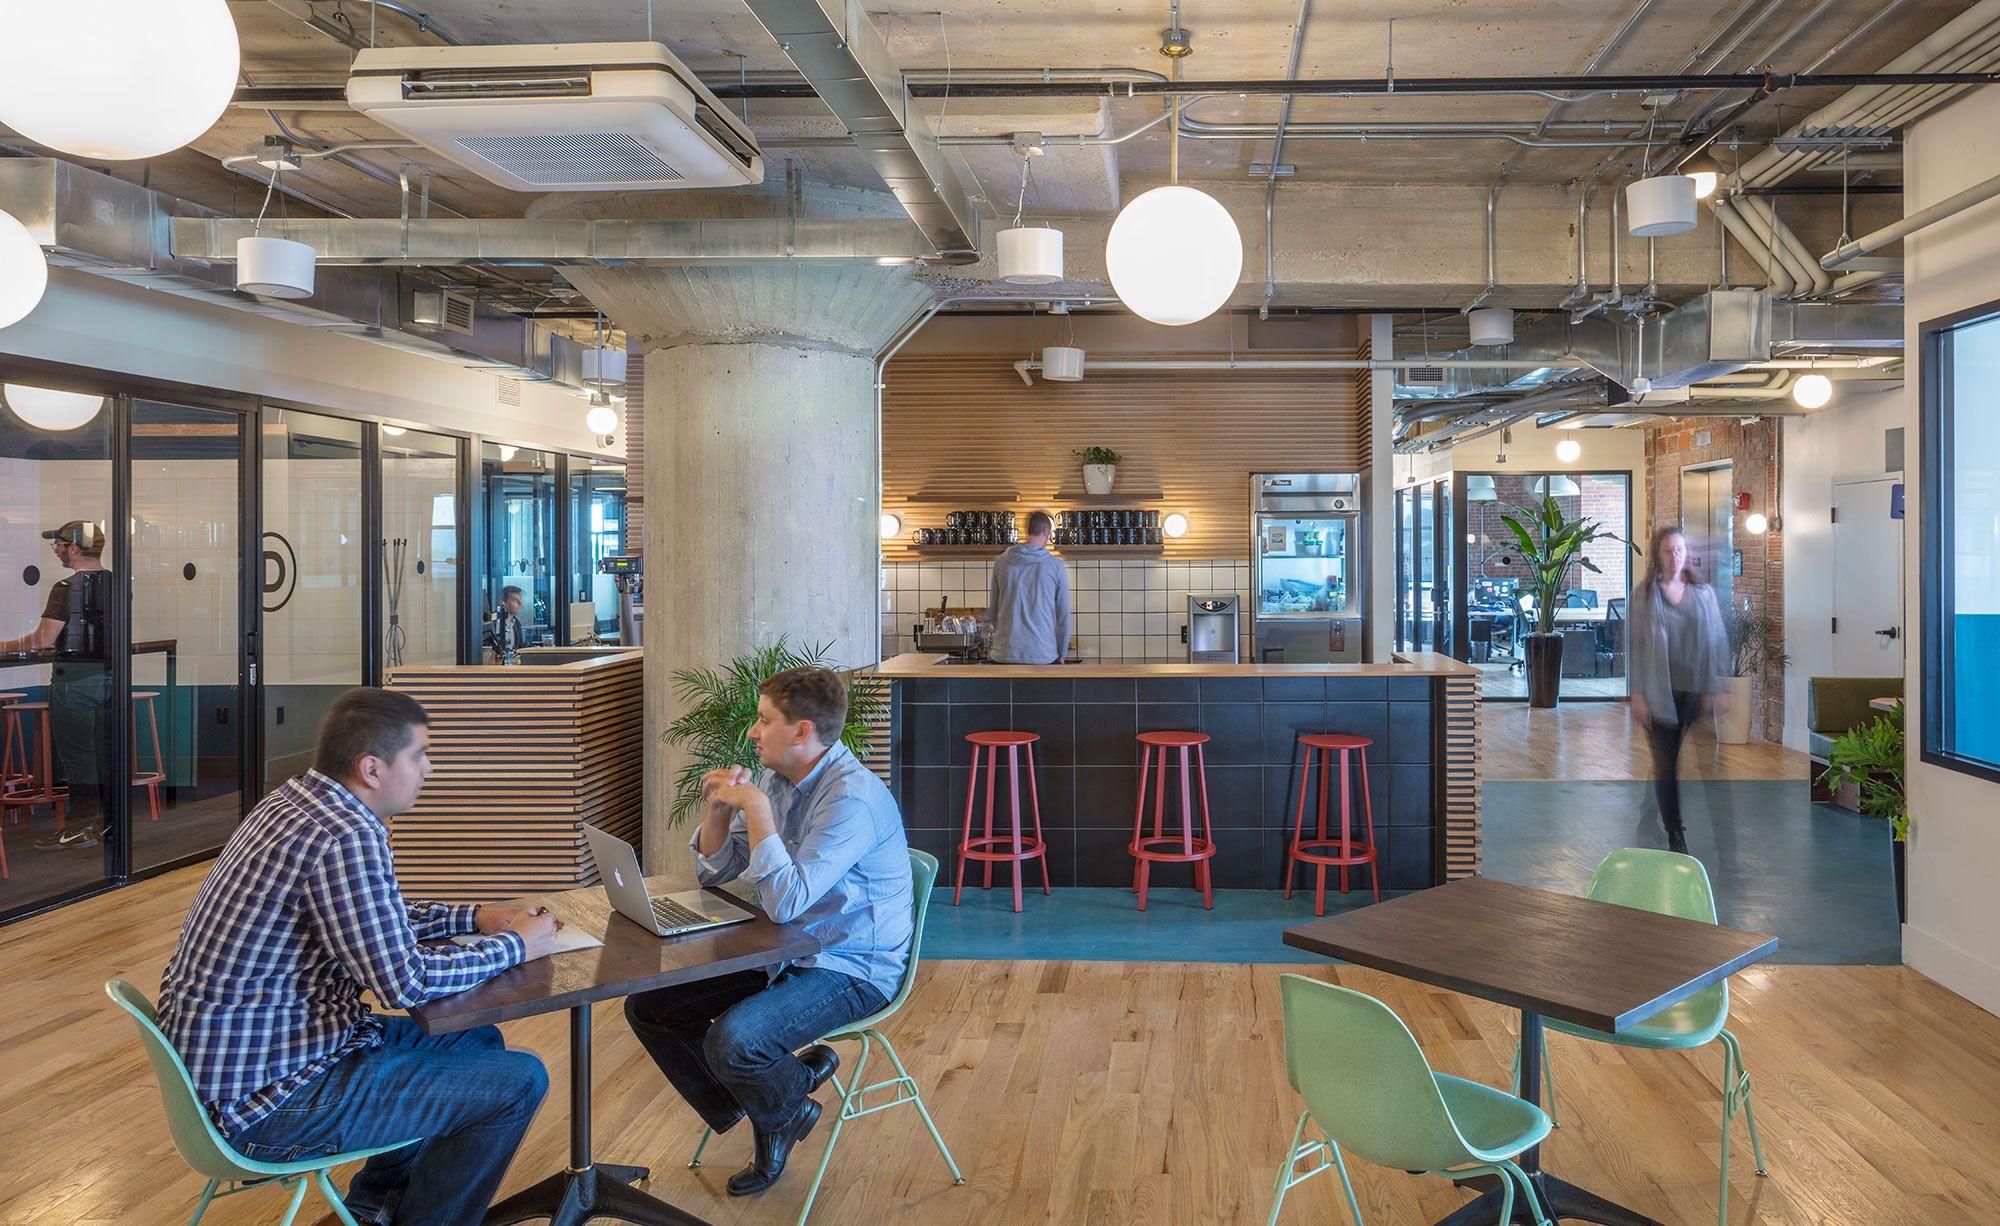 Corrigan Station WeWork In Kansas City MO Helix Architecture Design